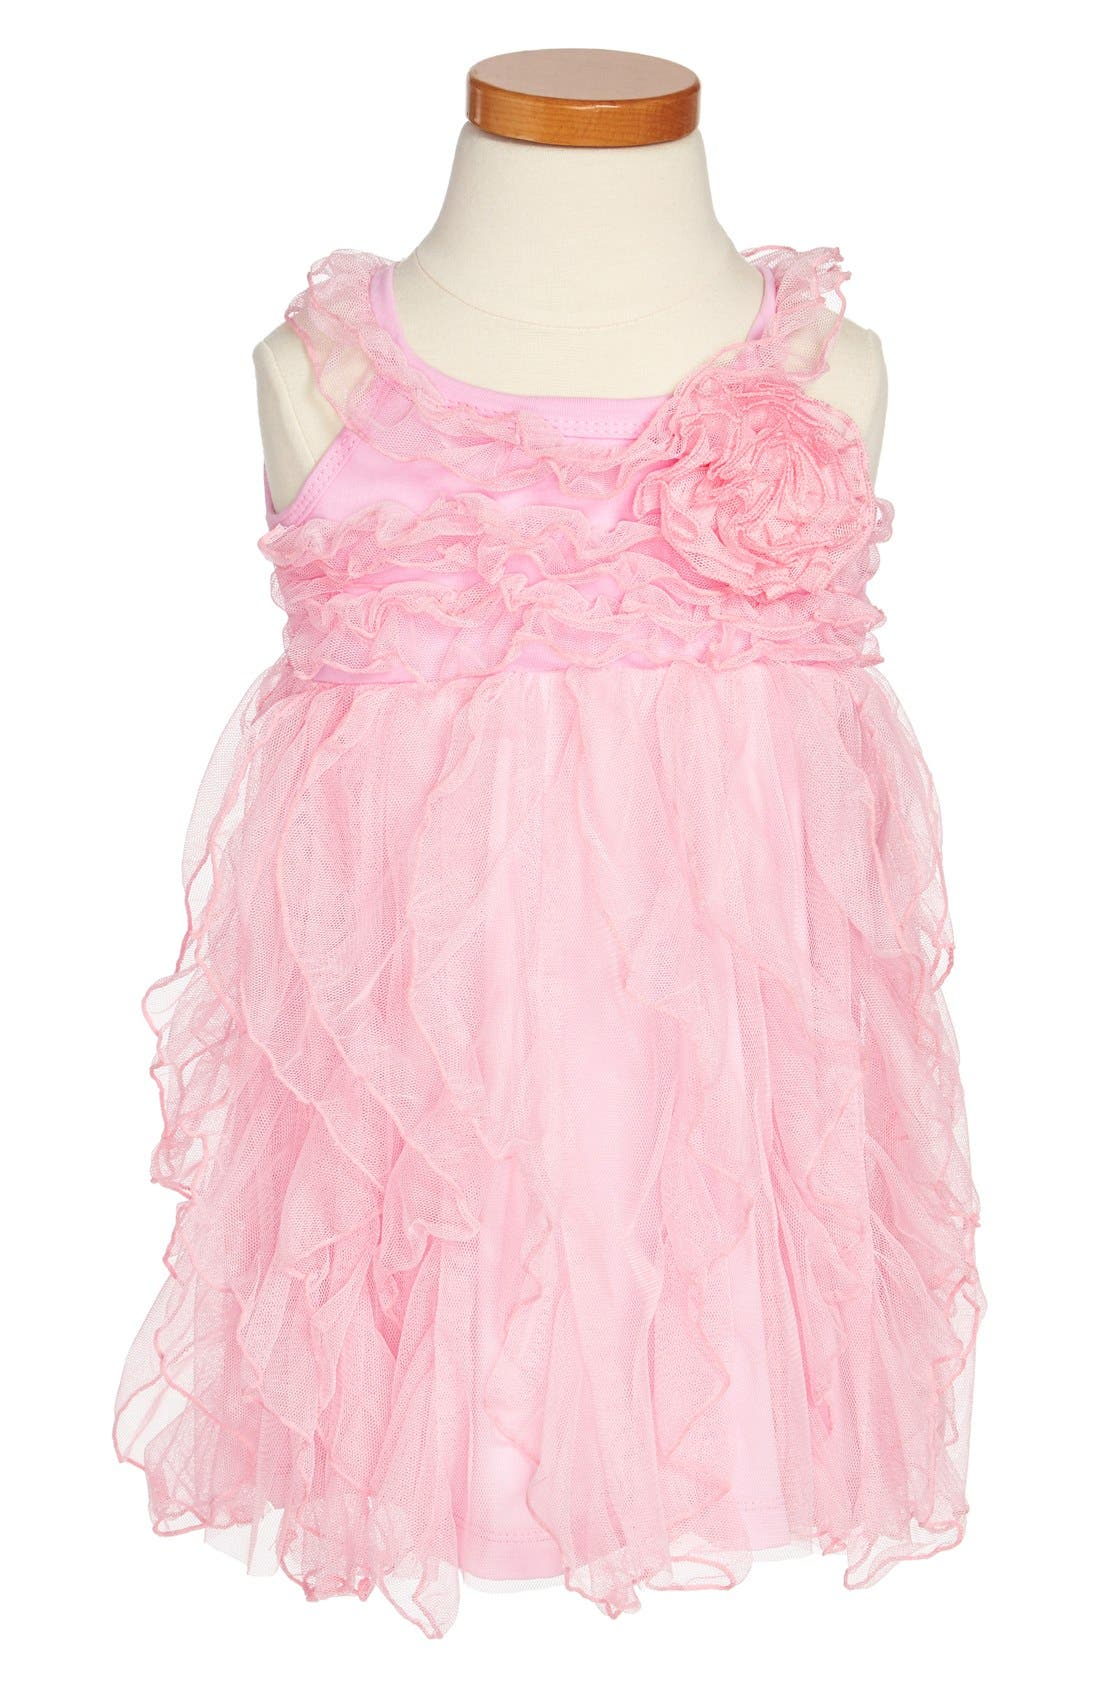 Main Image - Popatu Ruffle Dress (Toddler Girls)